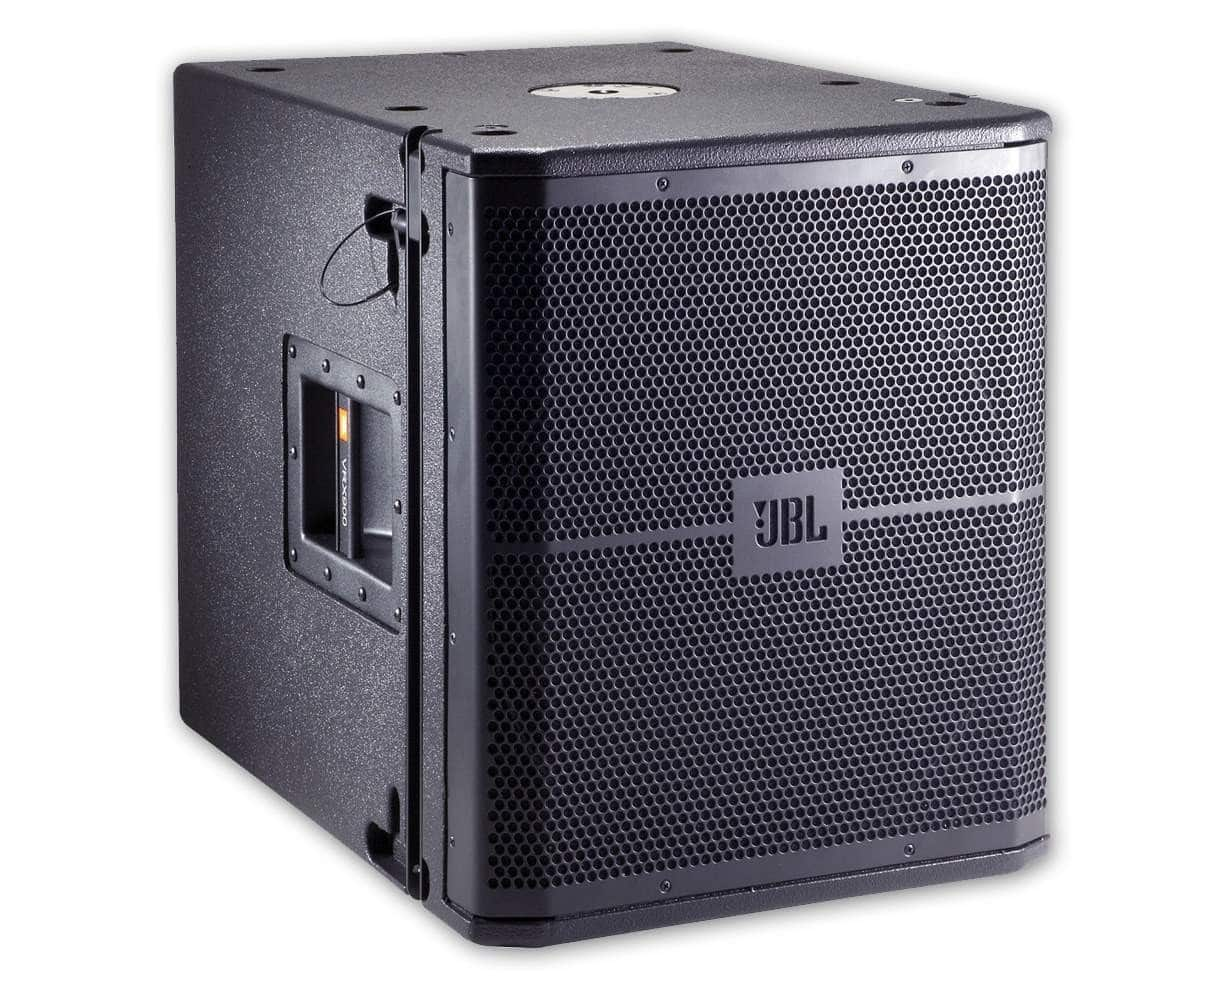 jbl-vrx915s_flying_subwoofer